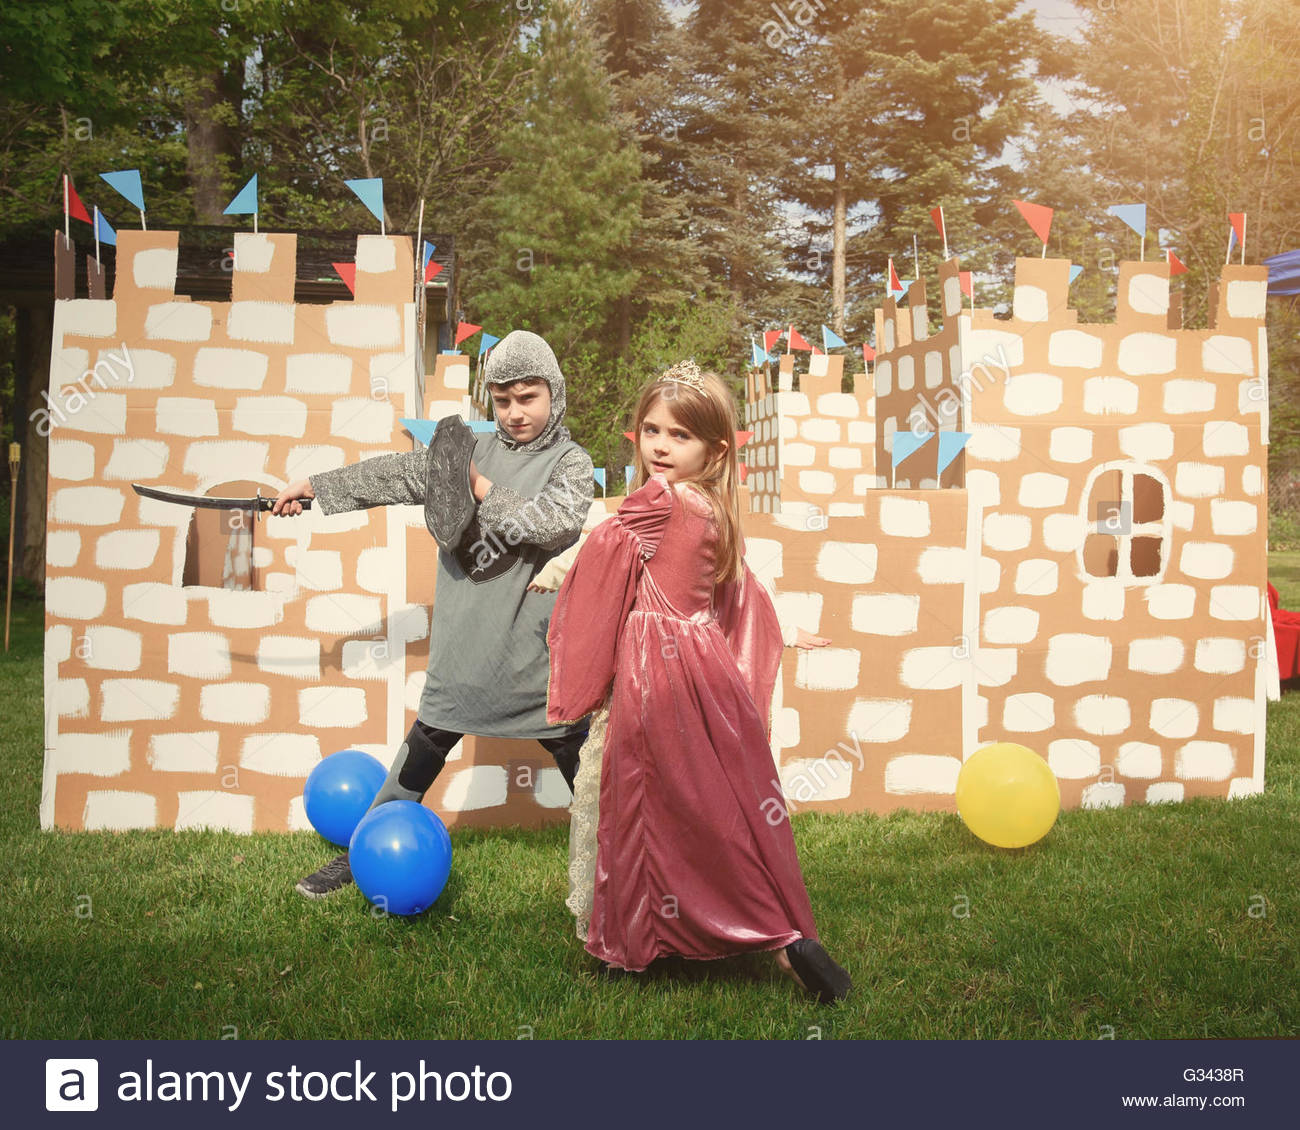 Children are dressed in a knight and princess costume in front of a homemade cardboard castle outside for a creative - Stock Image